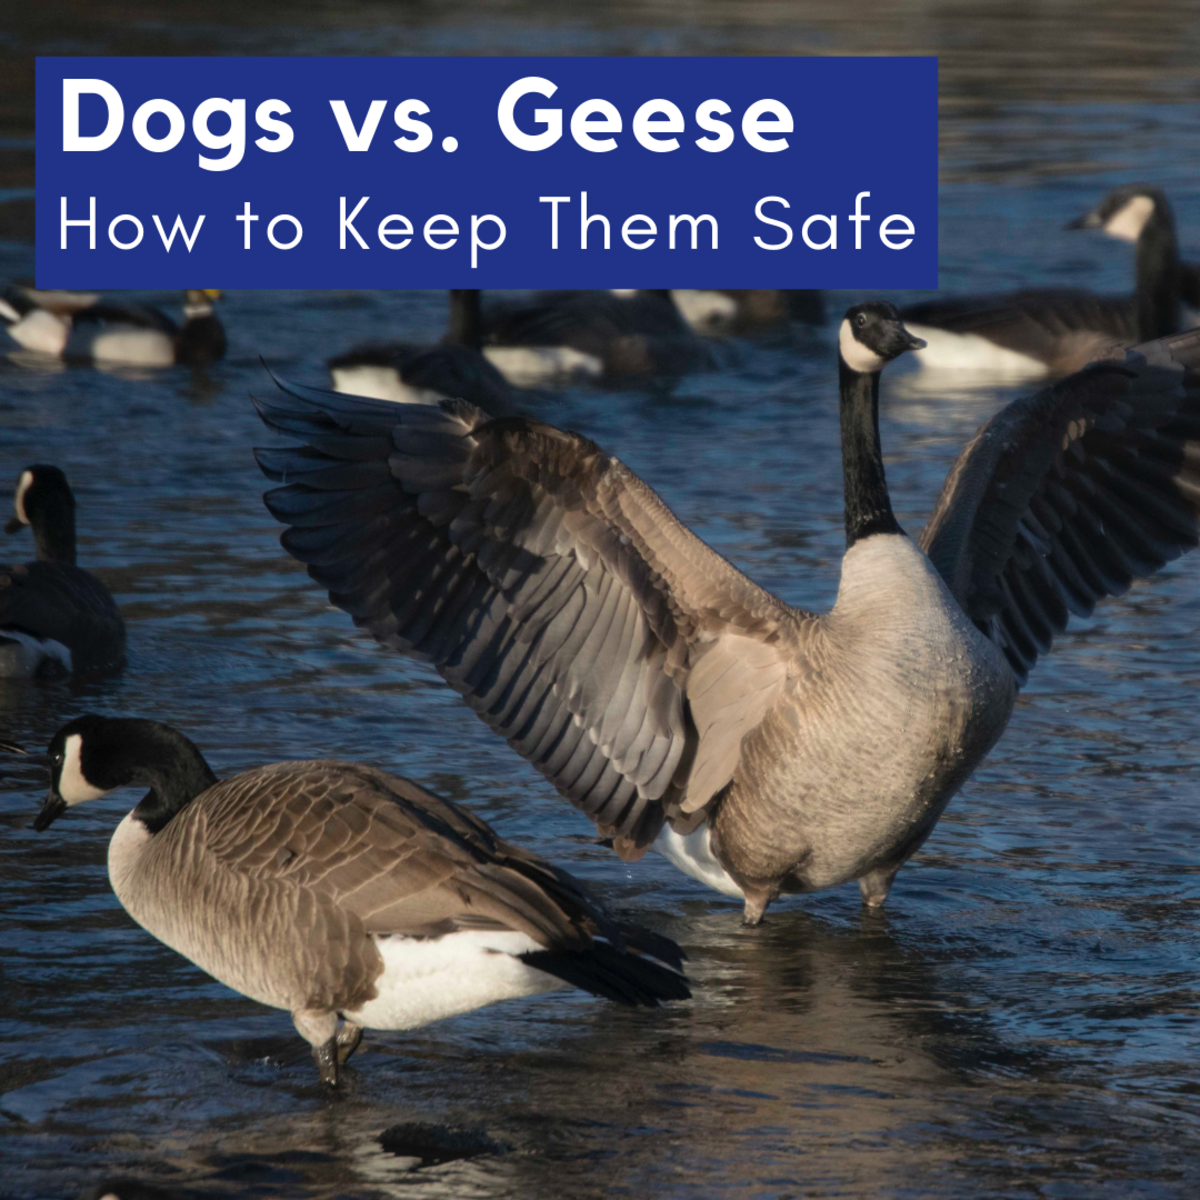 Dogs and Geese: Safety Tips